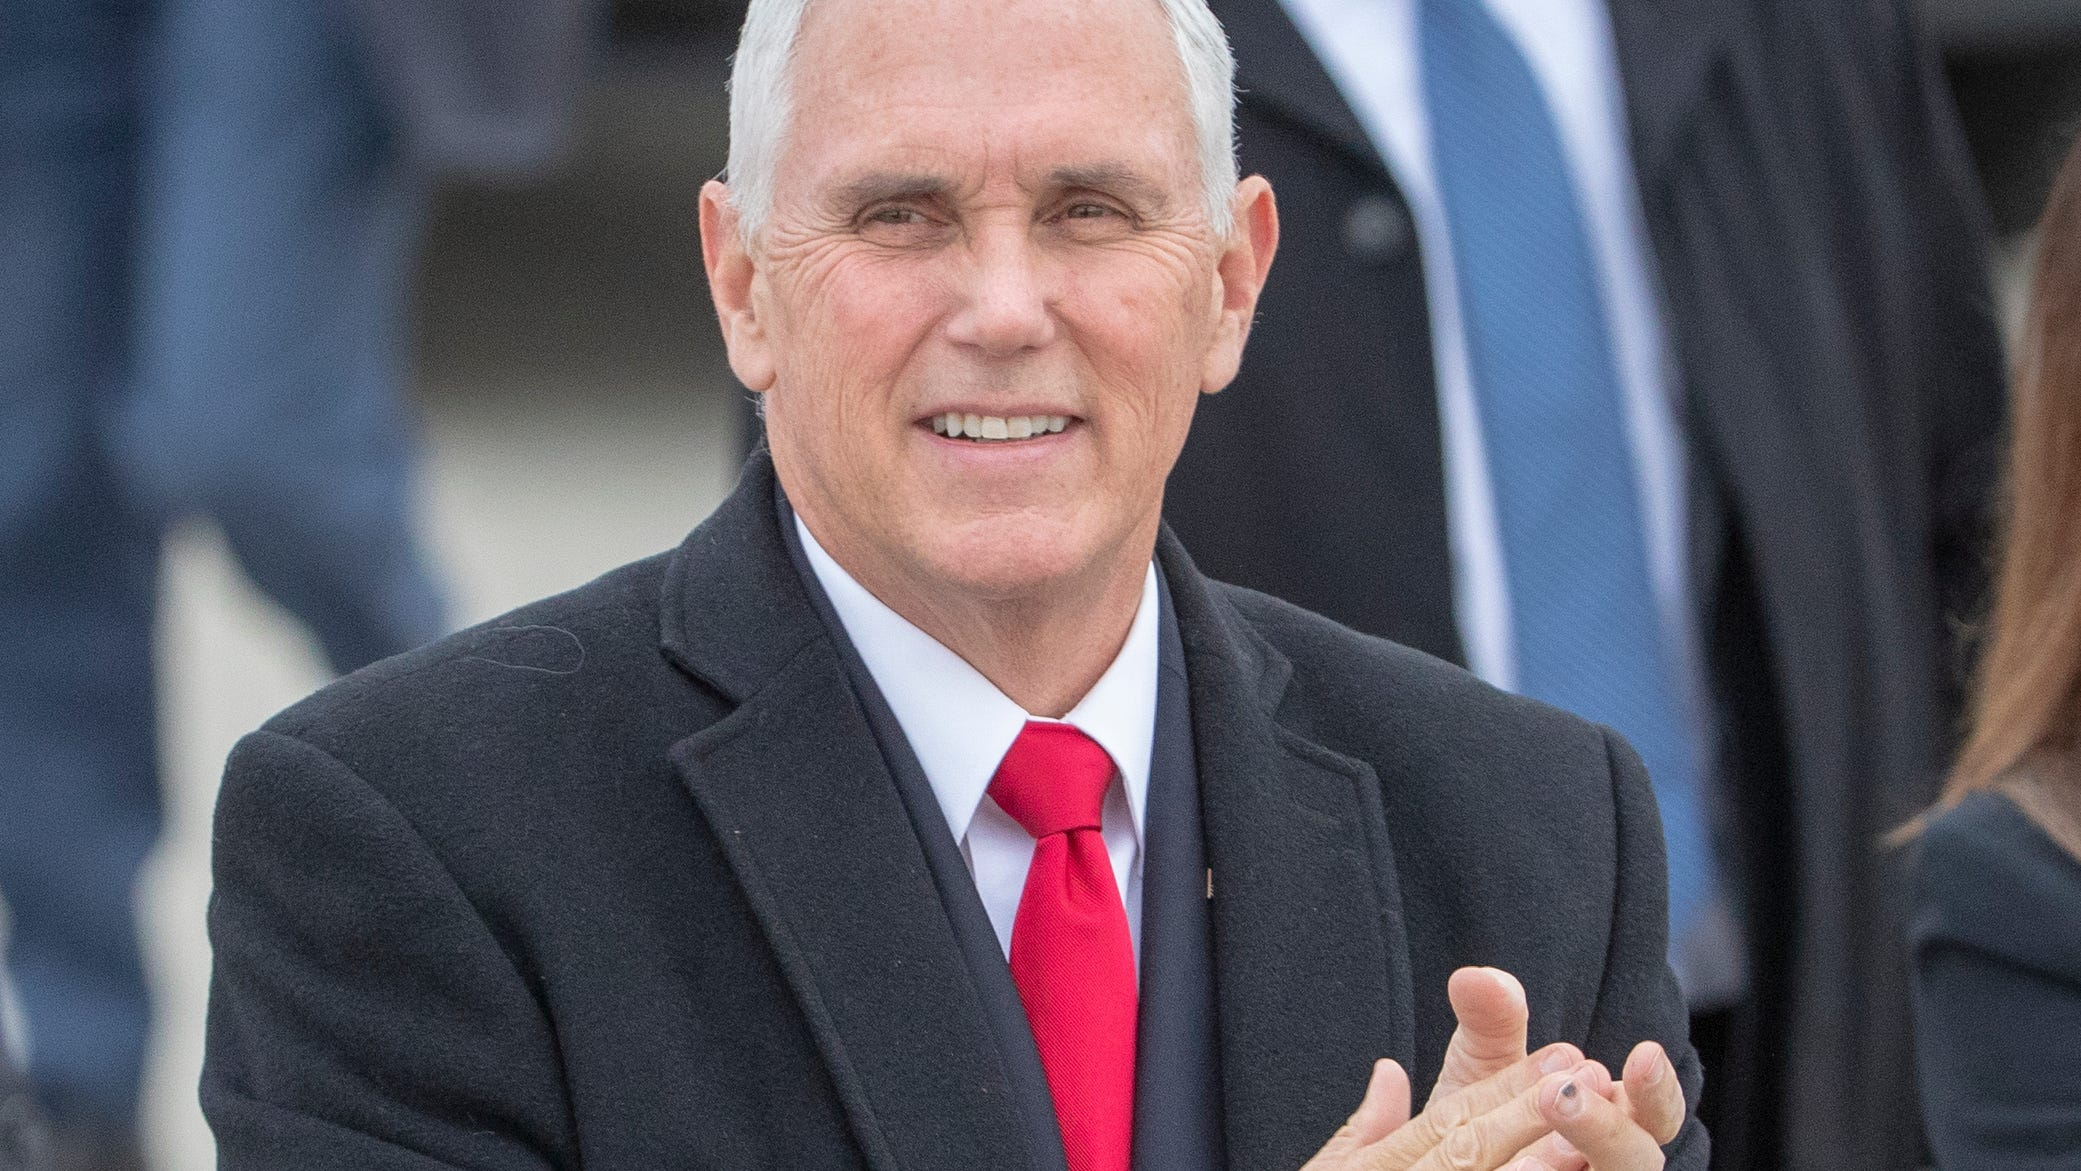 Vice President Mike Pence to campaign in Fort Wayne, Indiana, Thursday